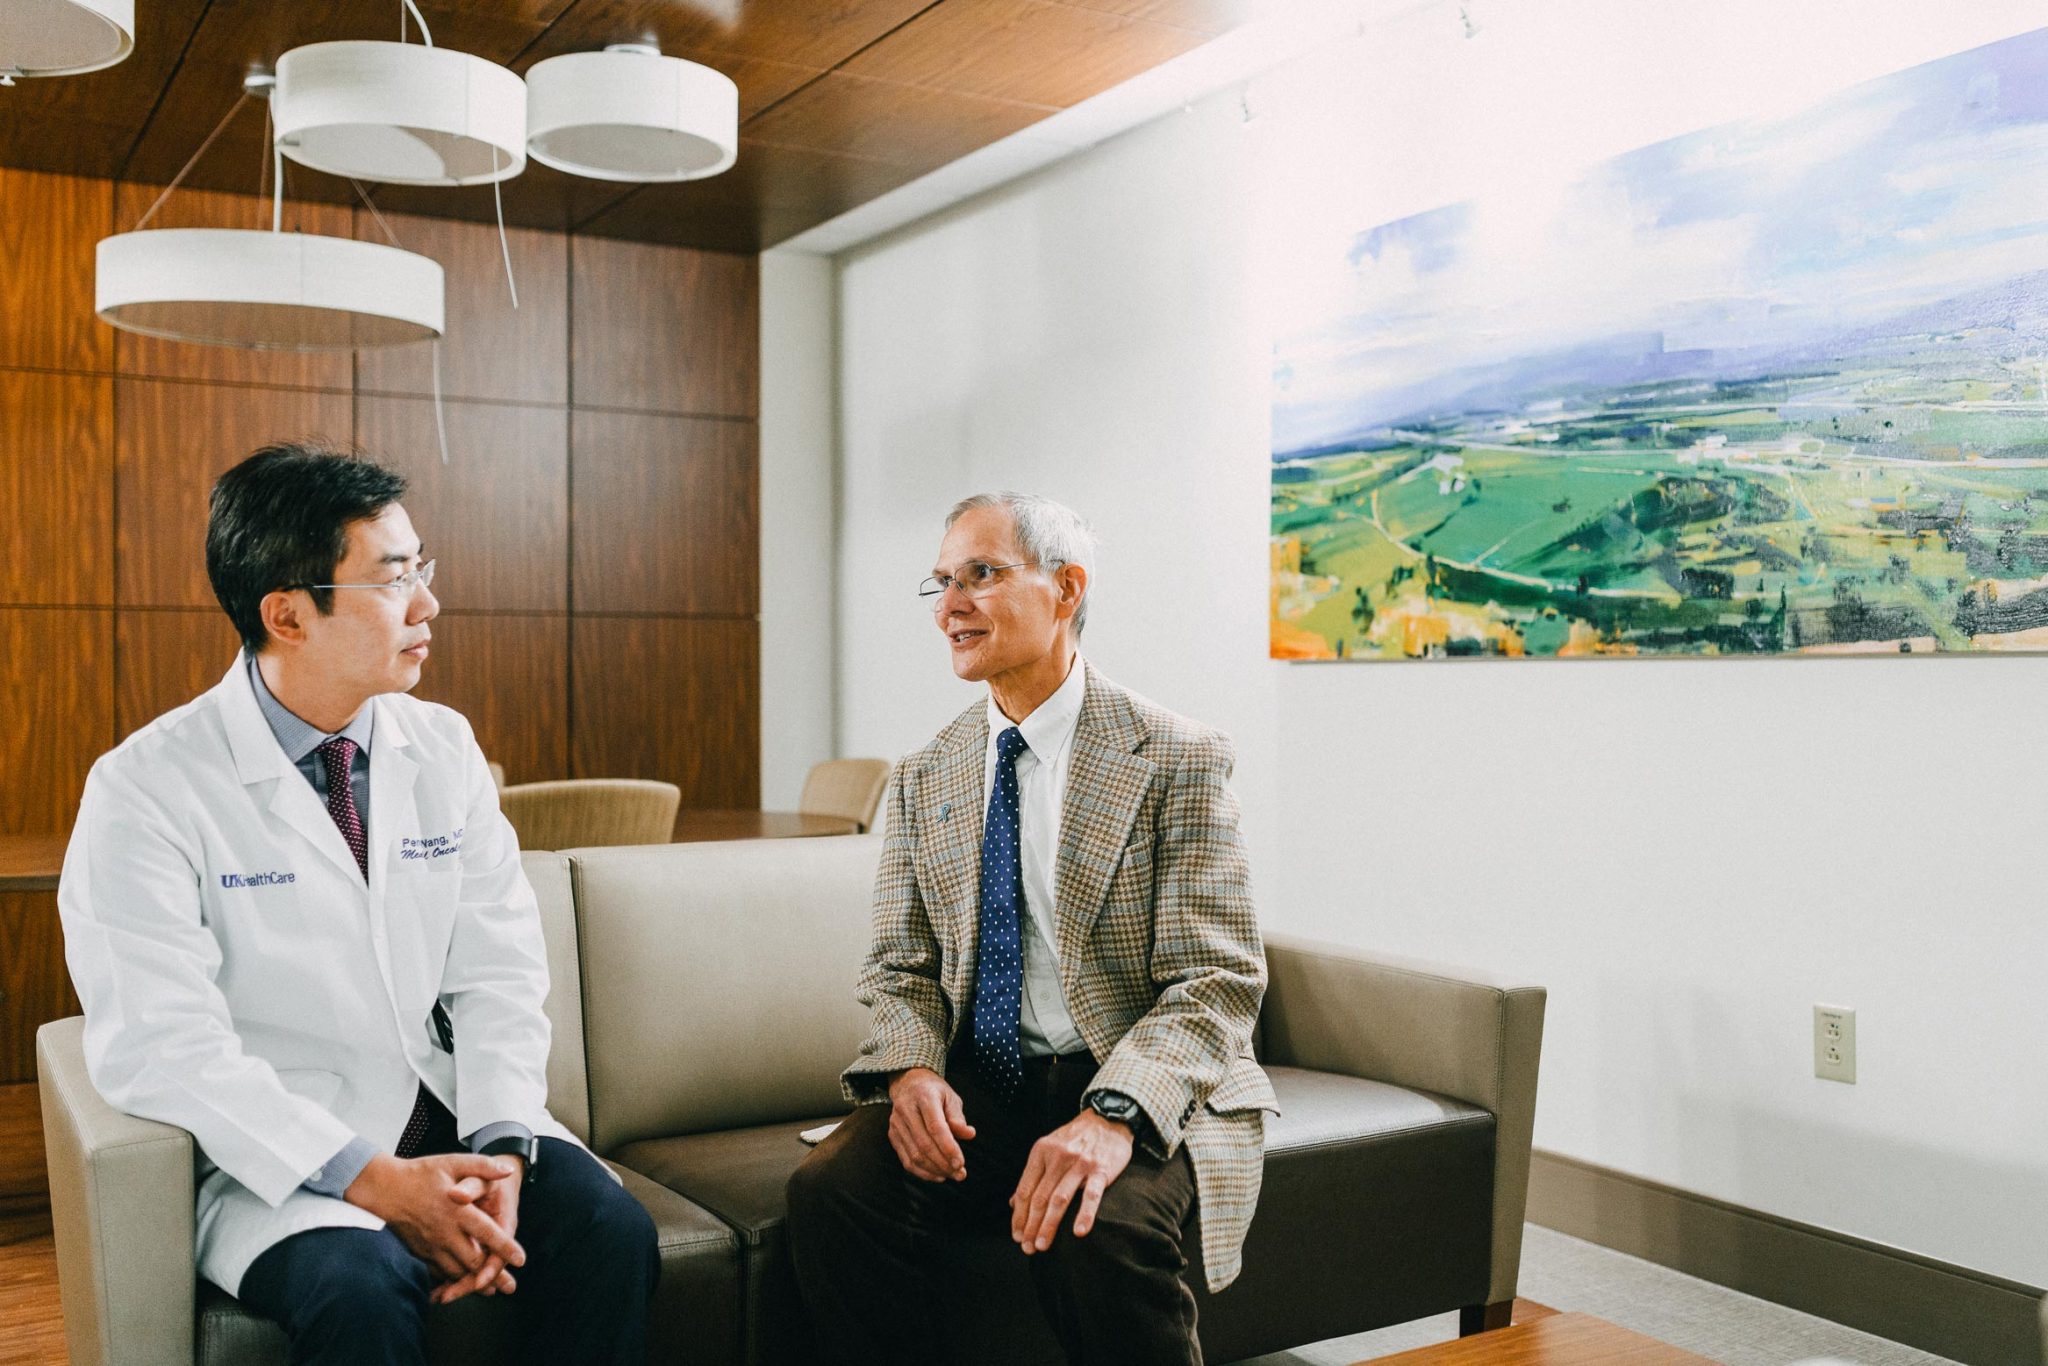 Dr. Charles Lutz seated on a bench having a conversation with Dr. Peng Wang.